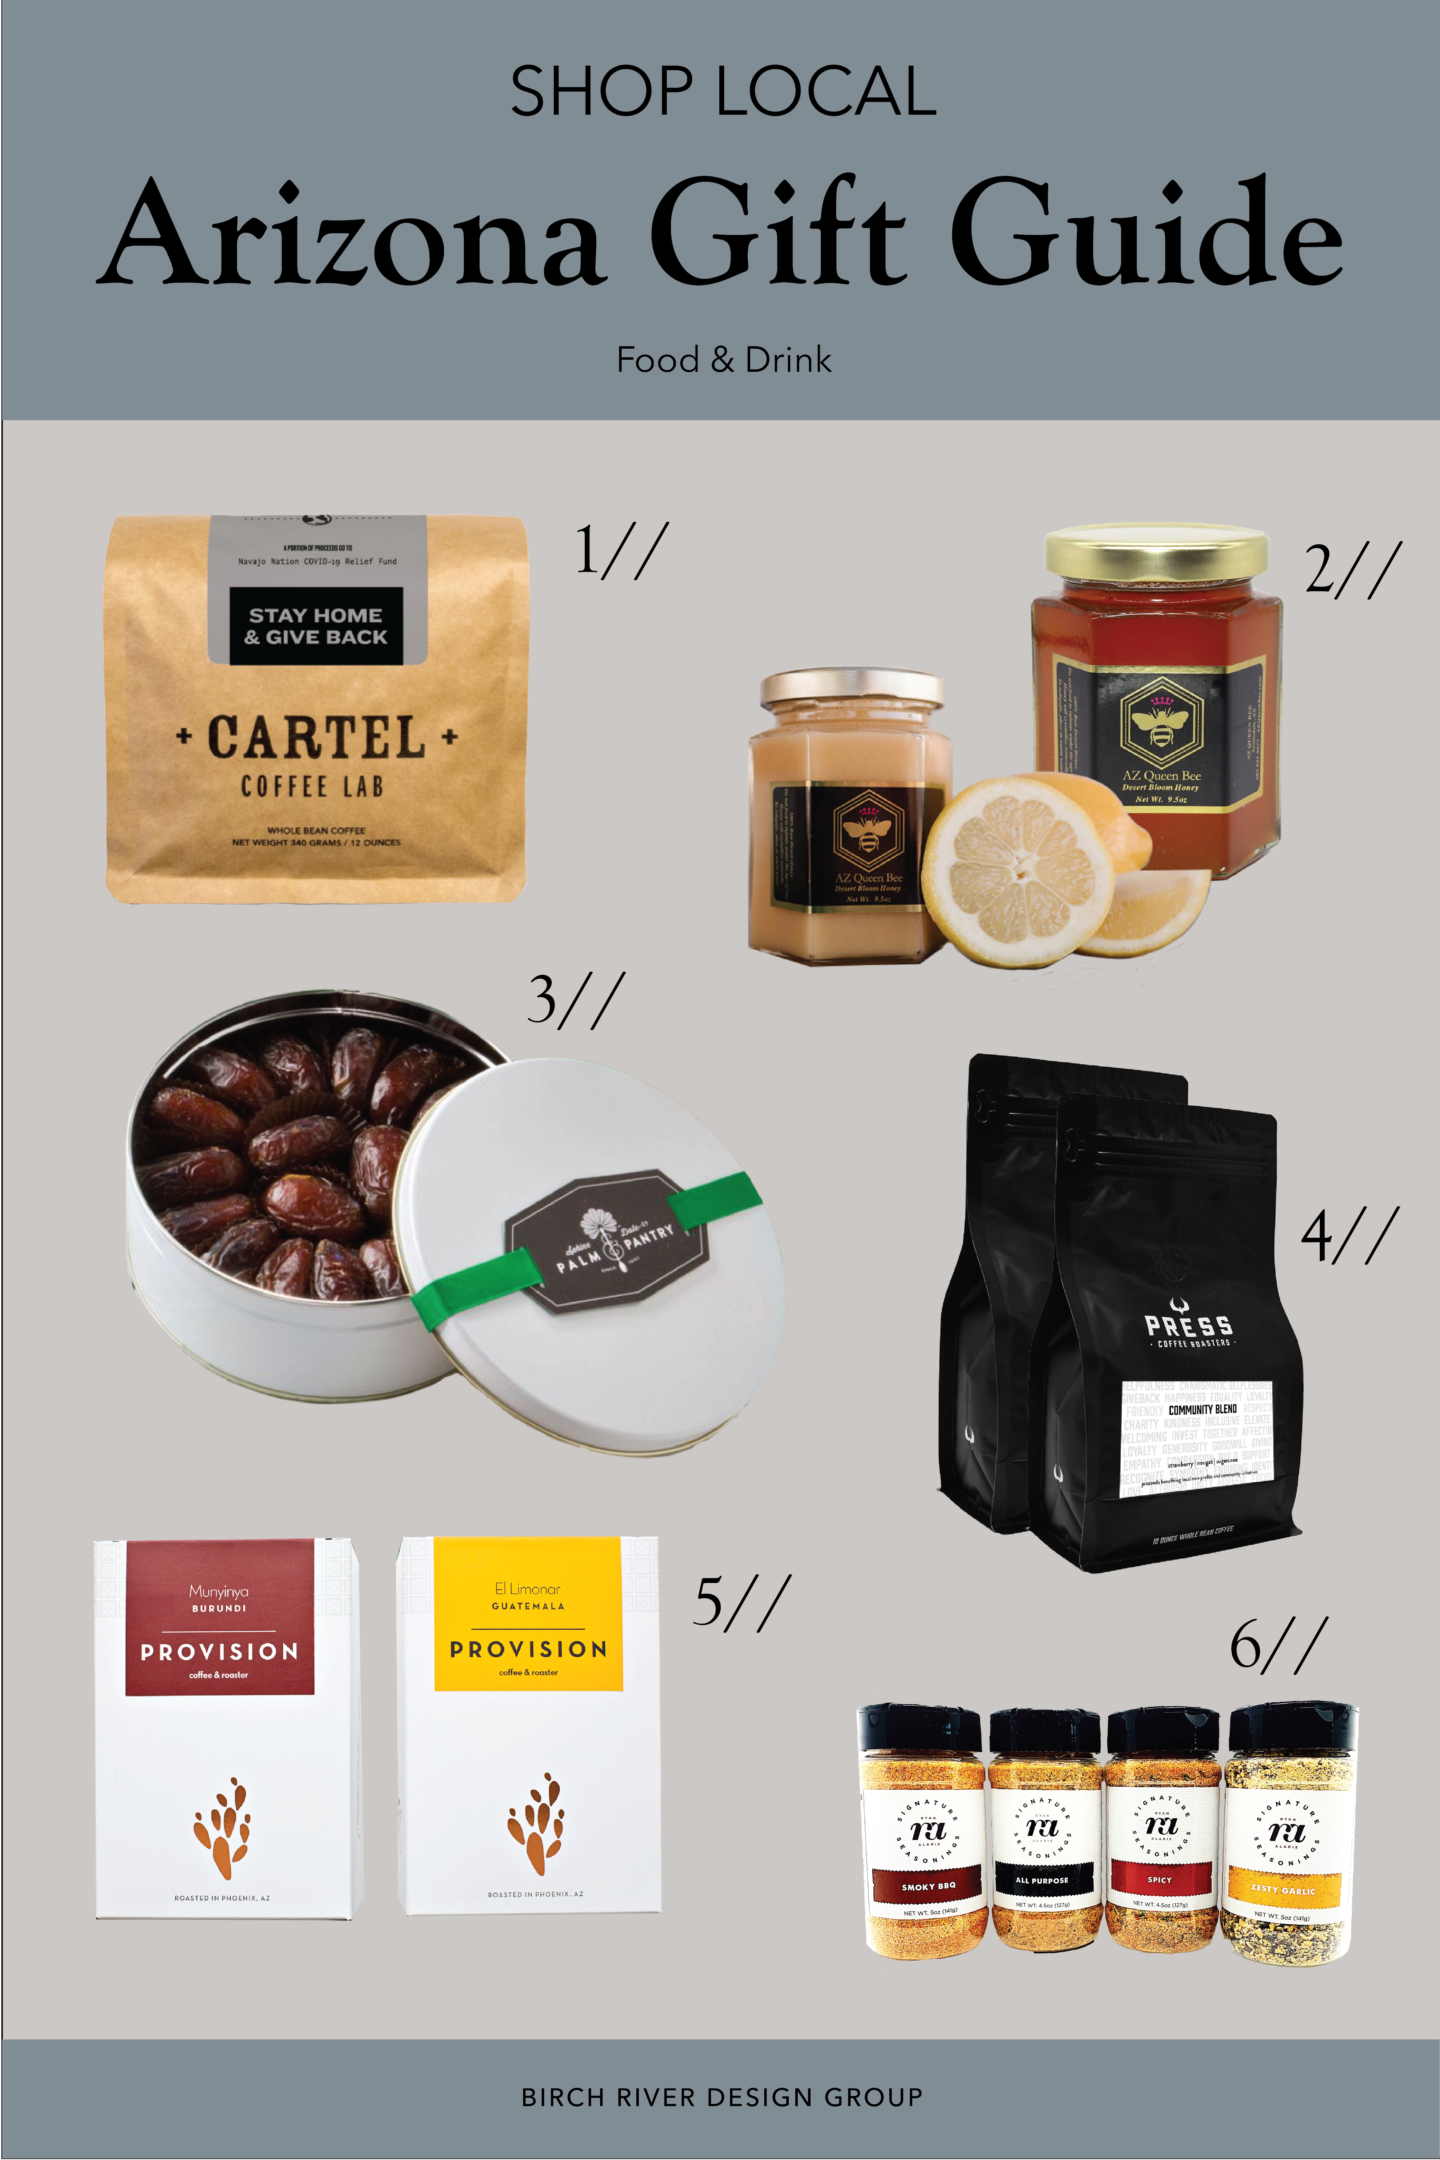 Collage of food and drink gift ideas from local Arizona businesses for Small Business Saturday